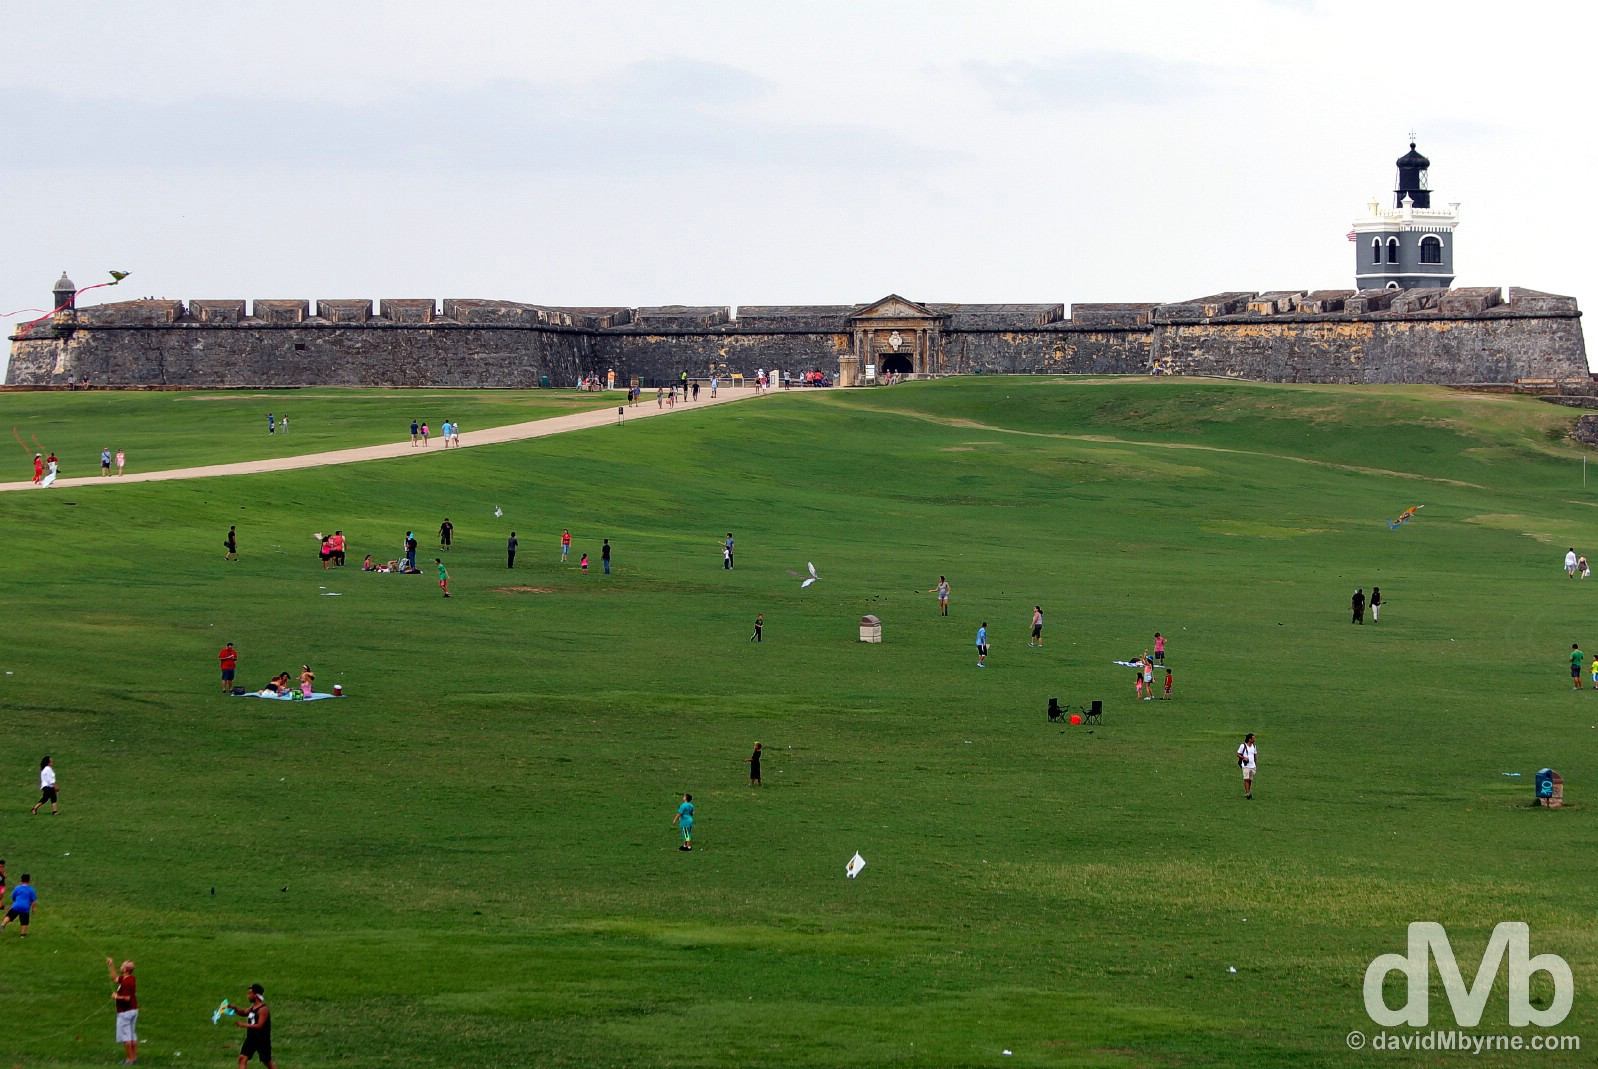 Campo del Morro in Old San Juan, Puerto Rico, Greater Antilles. May 31, 2015.